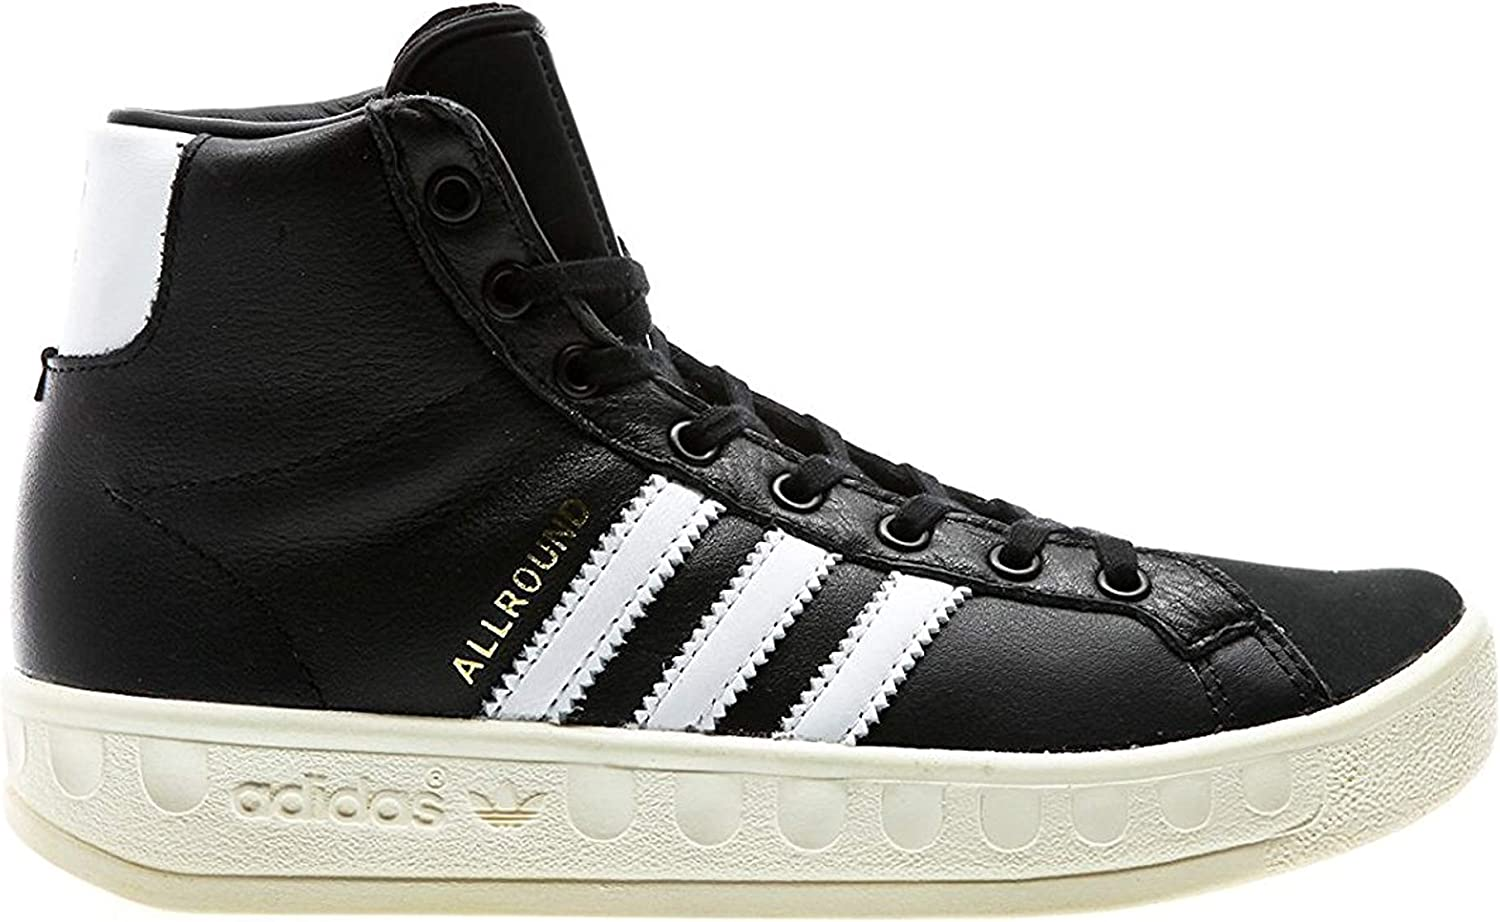 Adidas Originals Women's Allround OG Core Black White   gold Metallic, 7.5 B(M) US